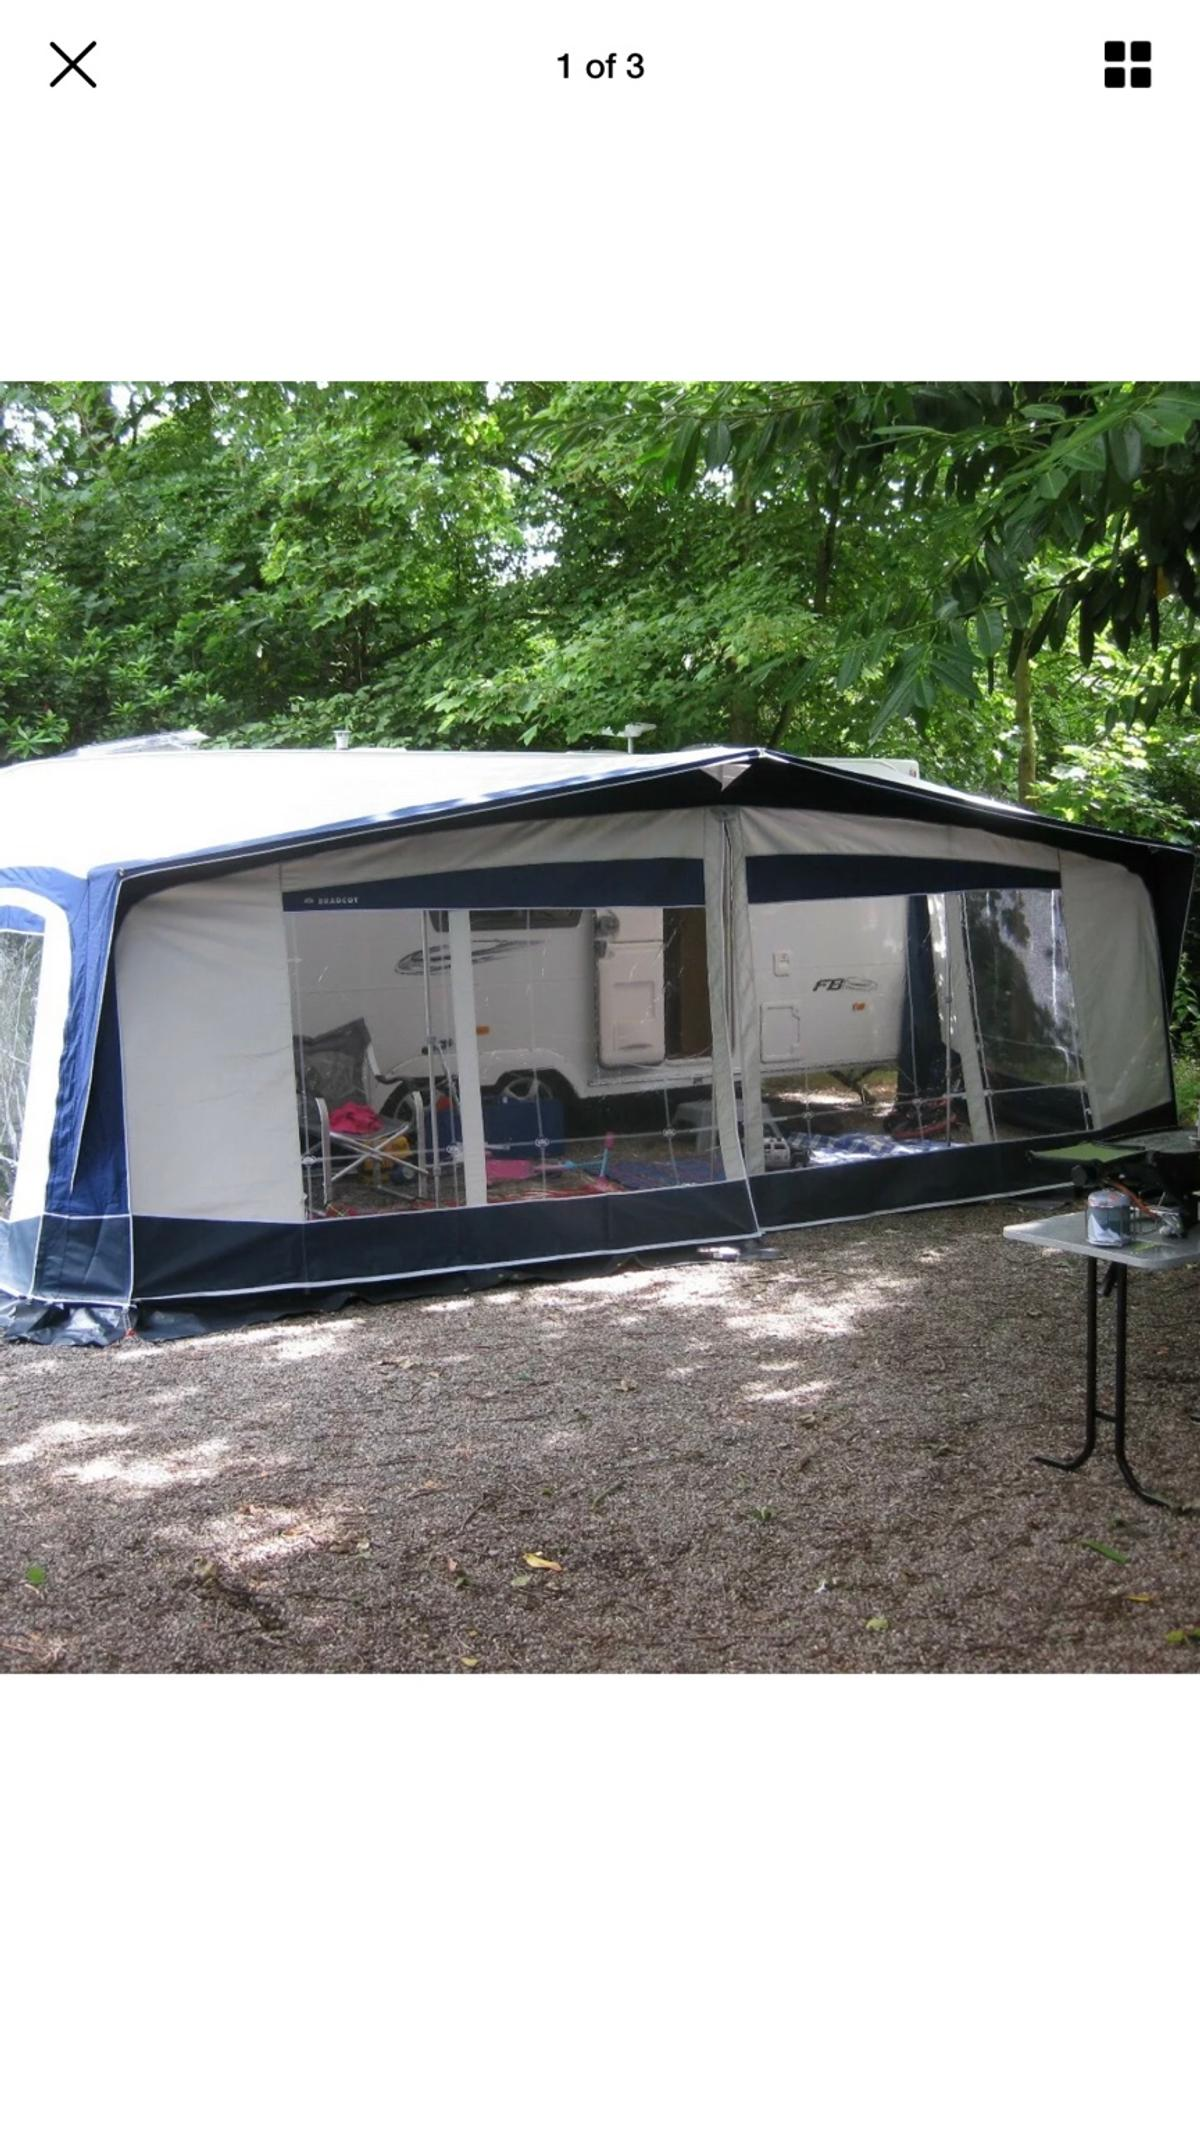 Bradcot Active Awning Size 10 55 In M25 Salford For 150 00 For Sale Shpock